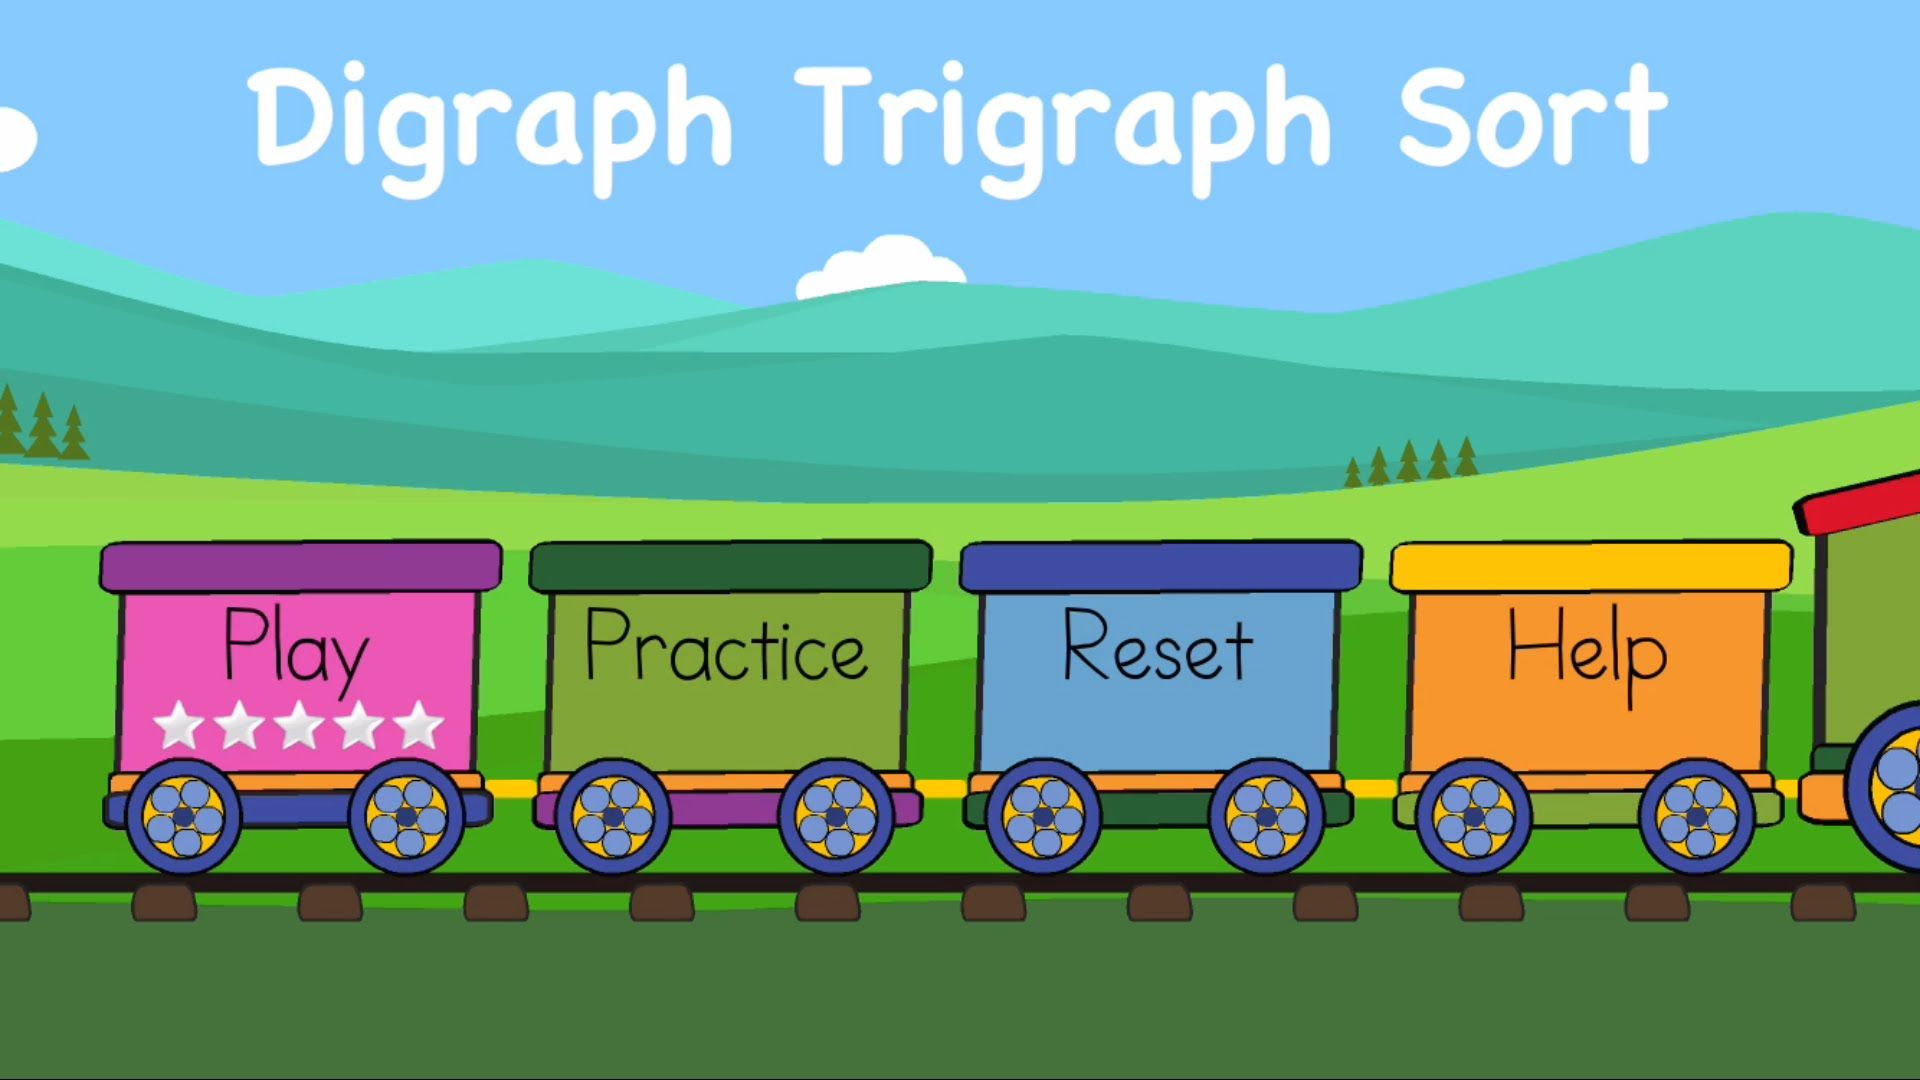 Digraph Trigraph Sort By Dezol